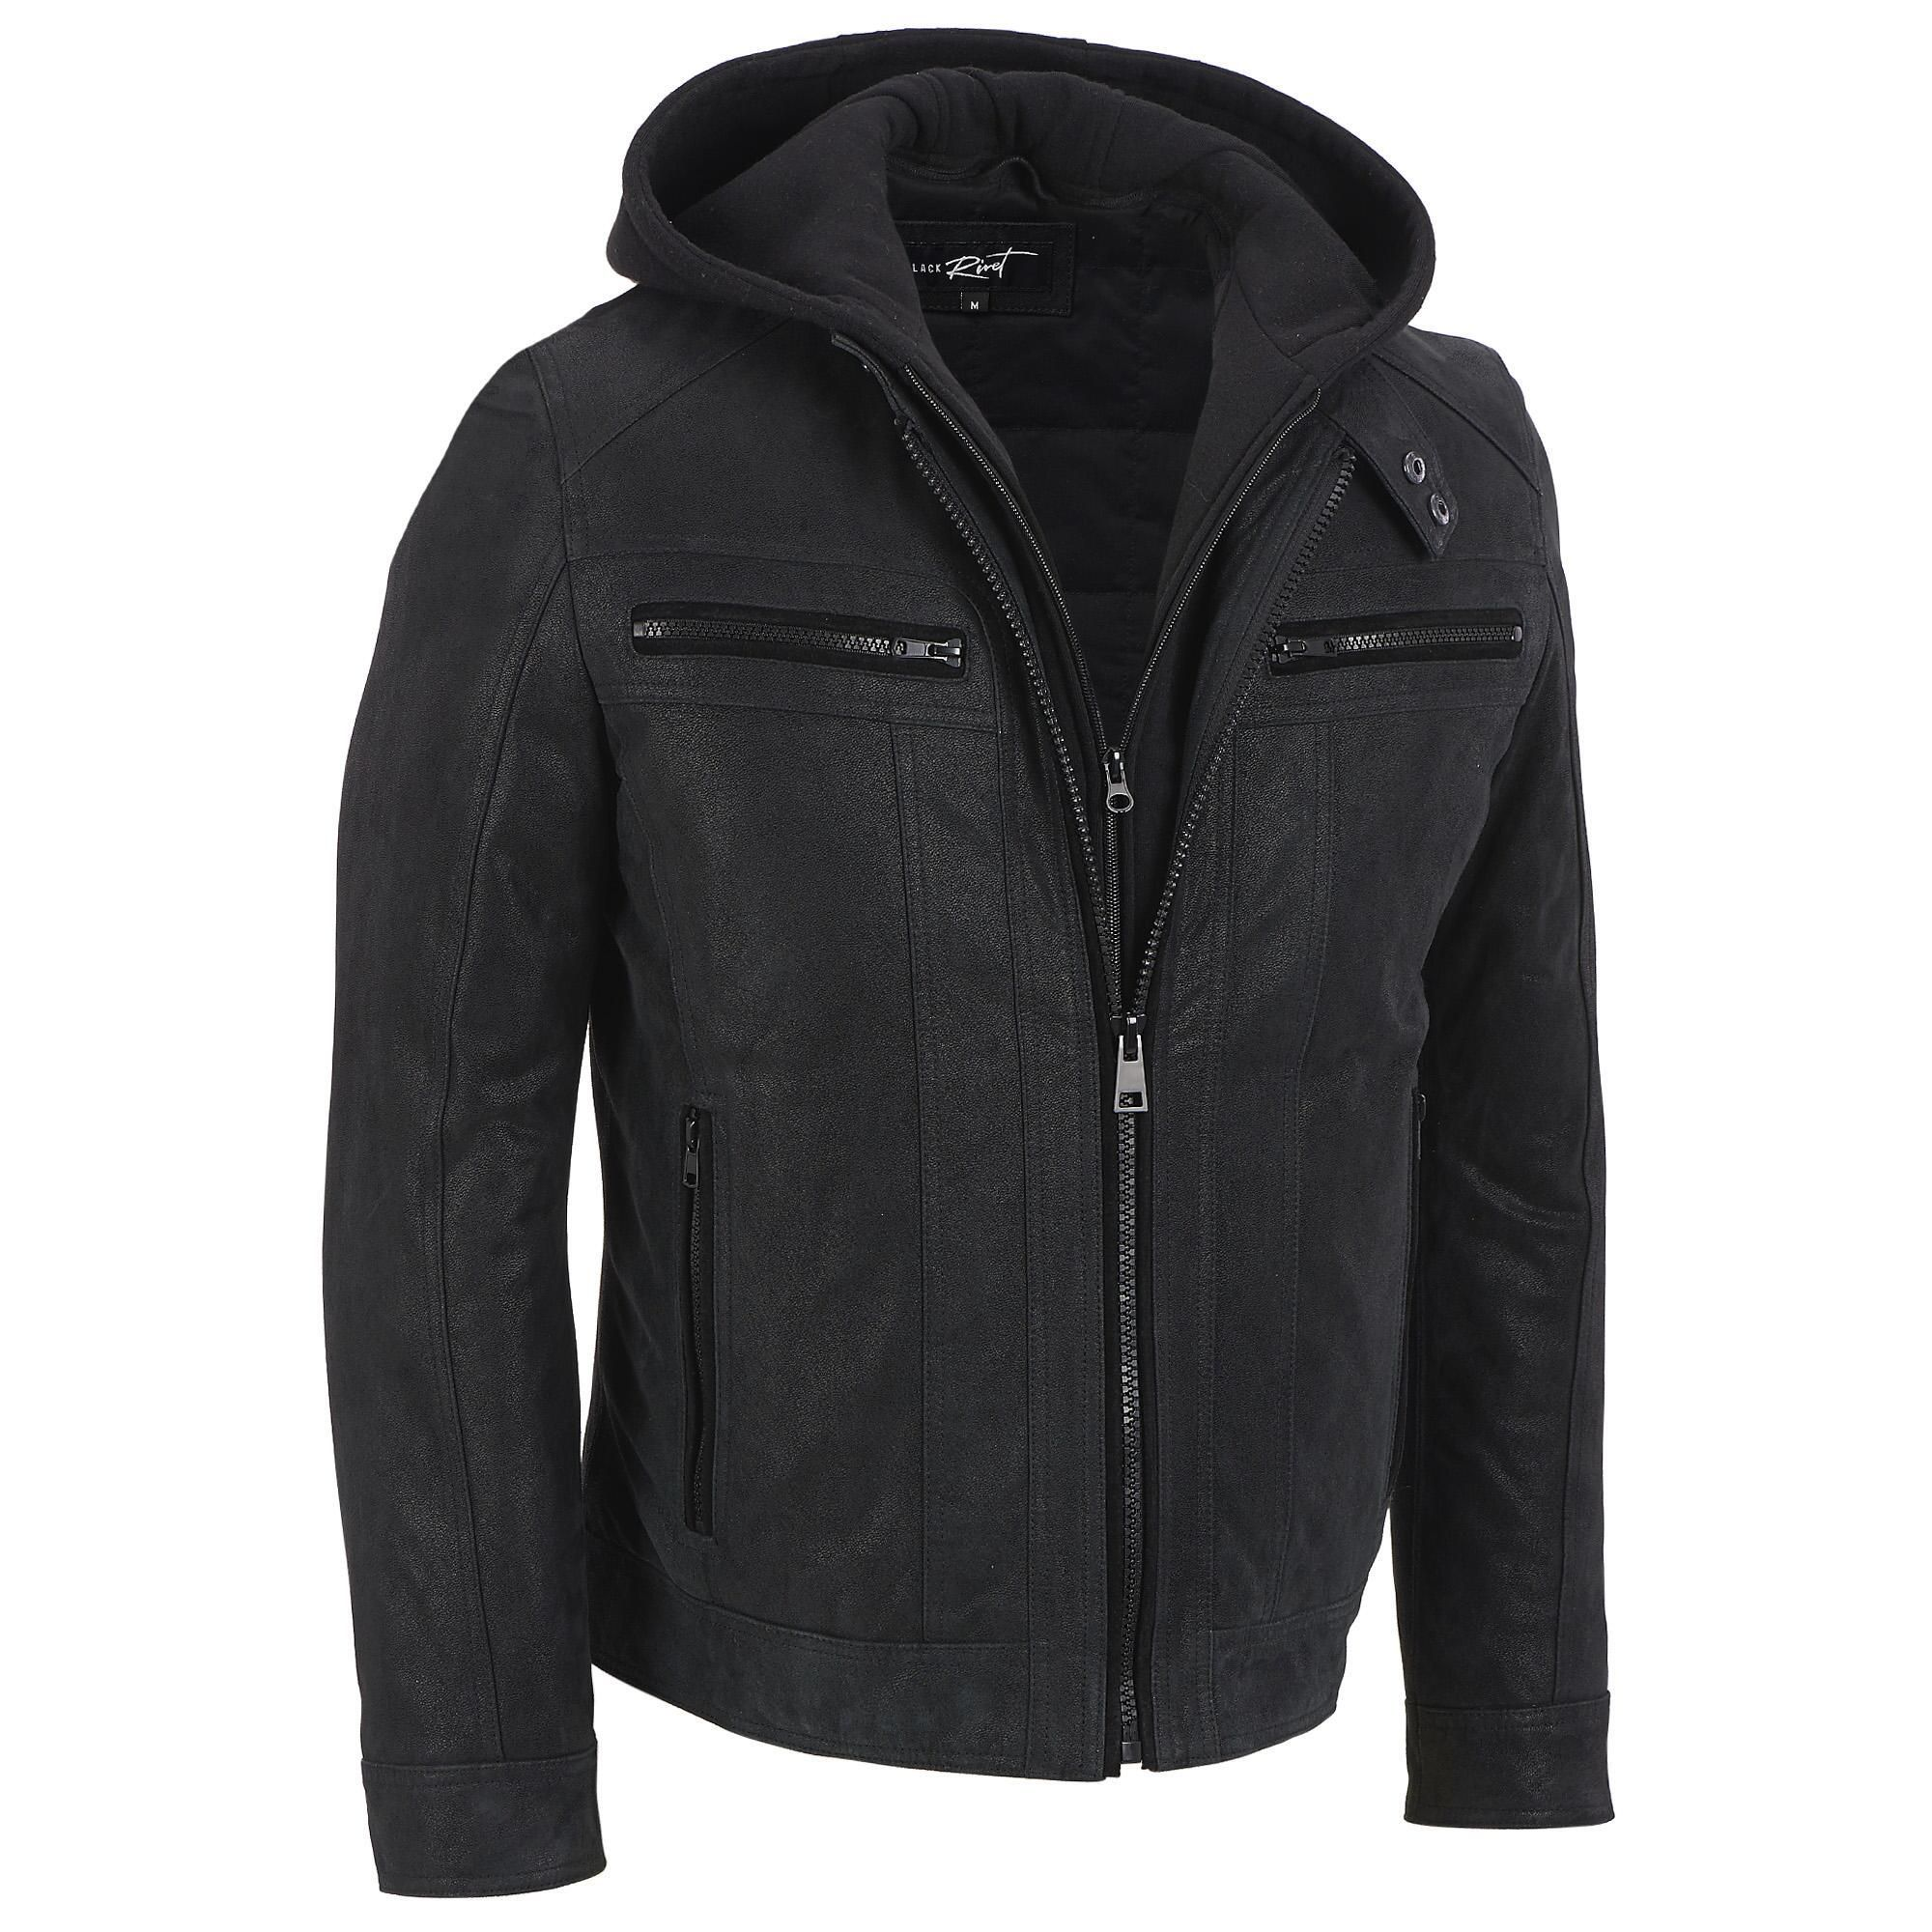 Big & Tall Black Rivet Leather Hooded Cycle Jacket w